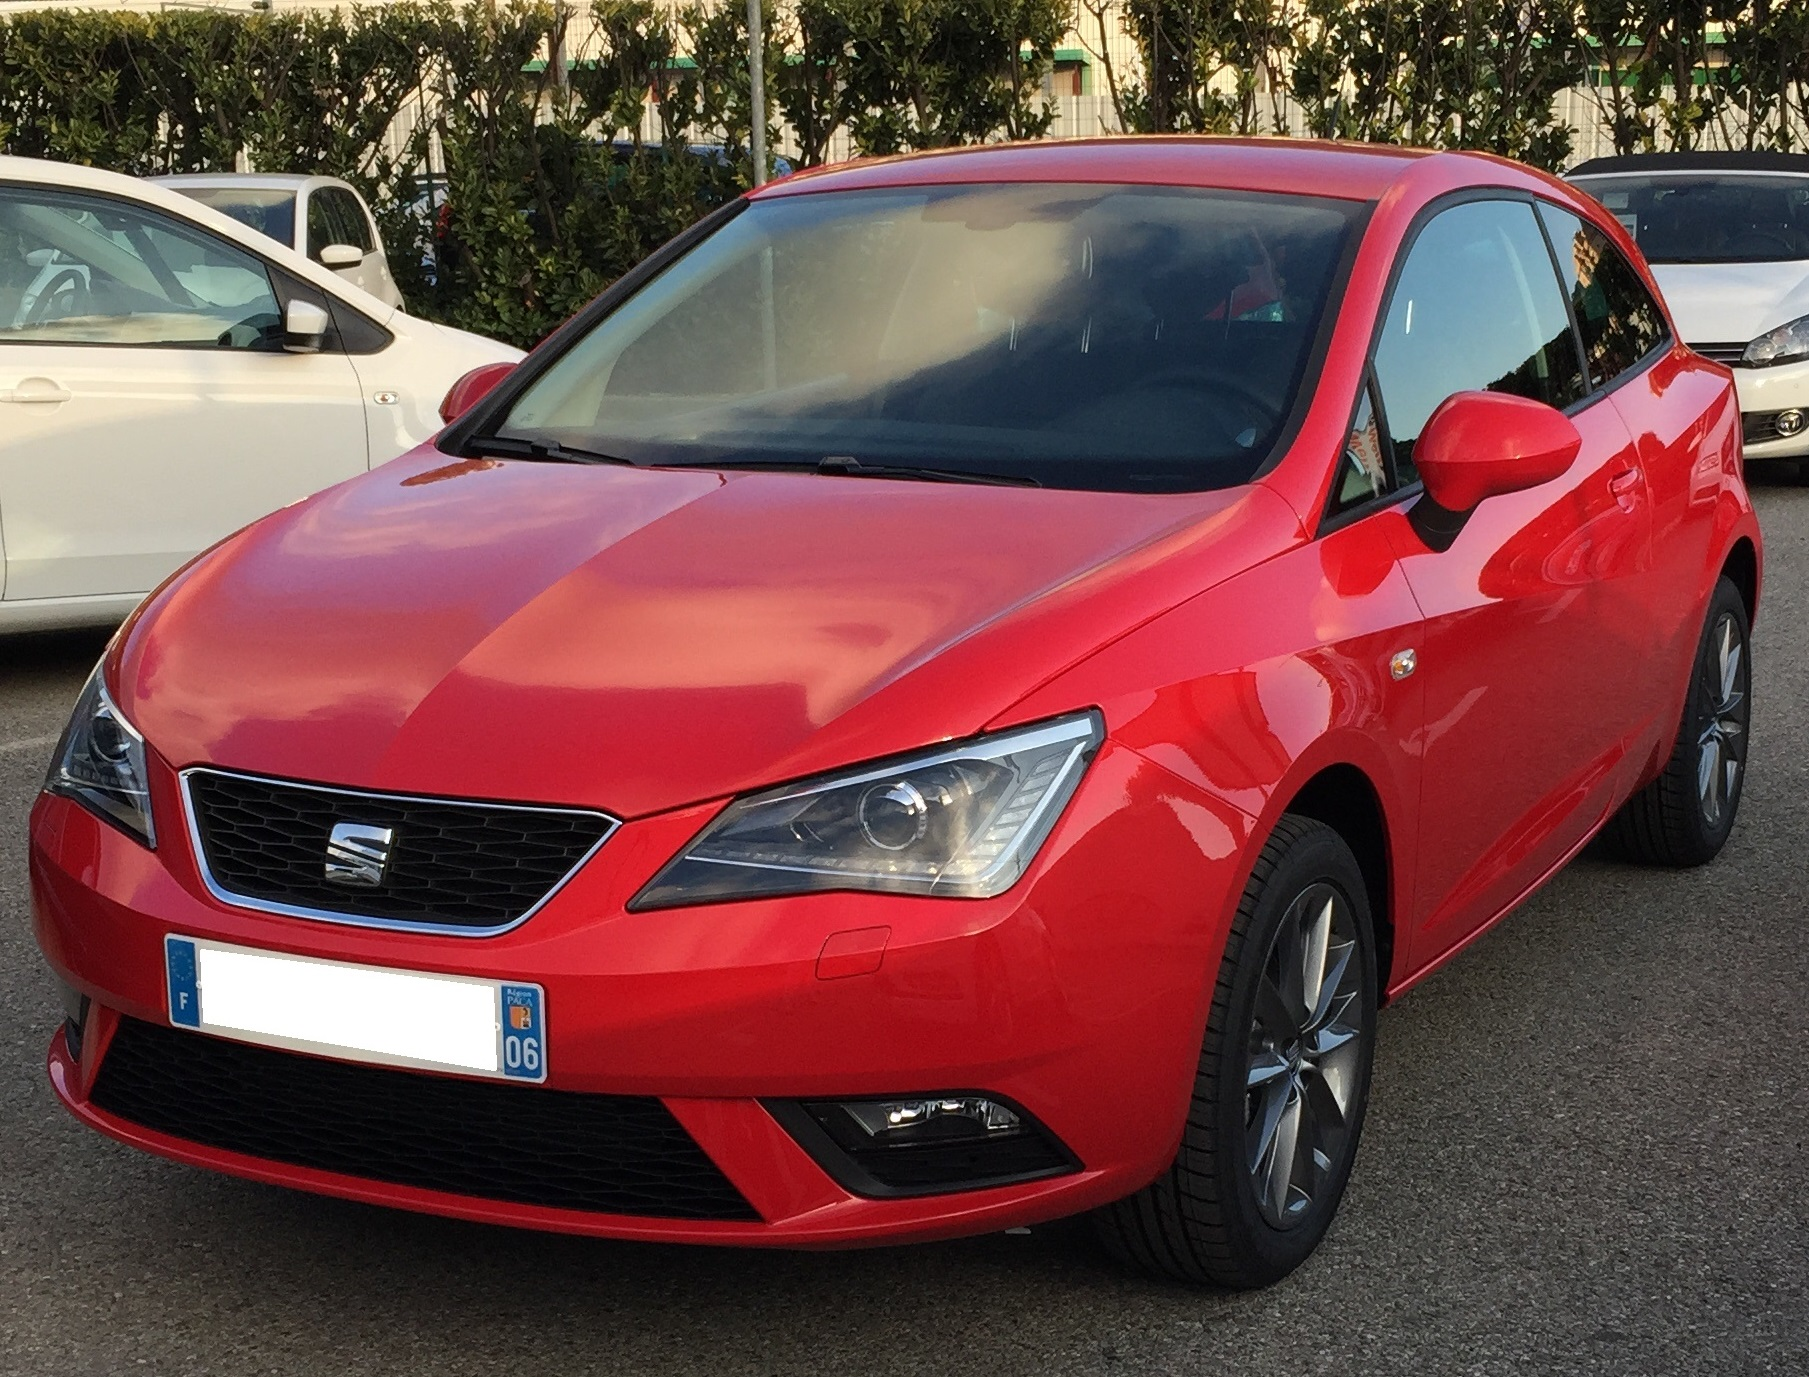 seat ibiza sc itech plus tsi 105 rouge emocion ibiza seat forum marques. Black Bedroom Furniture Sets. Home Design Ideas